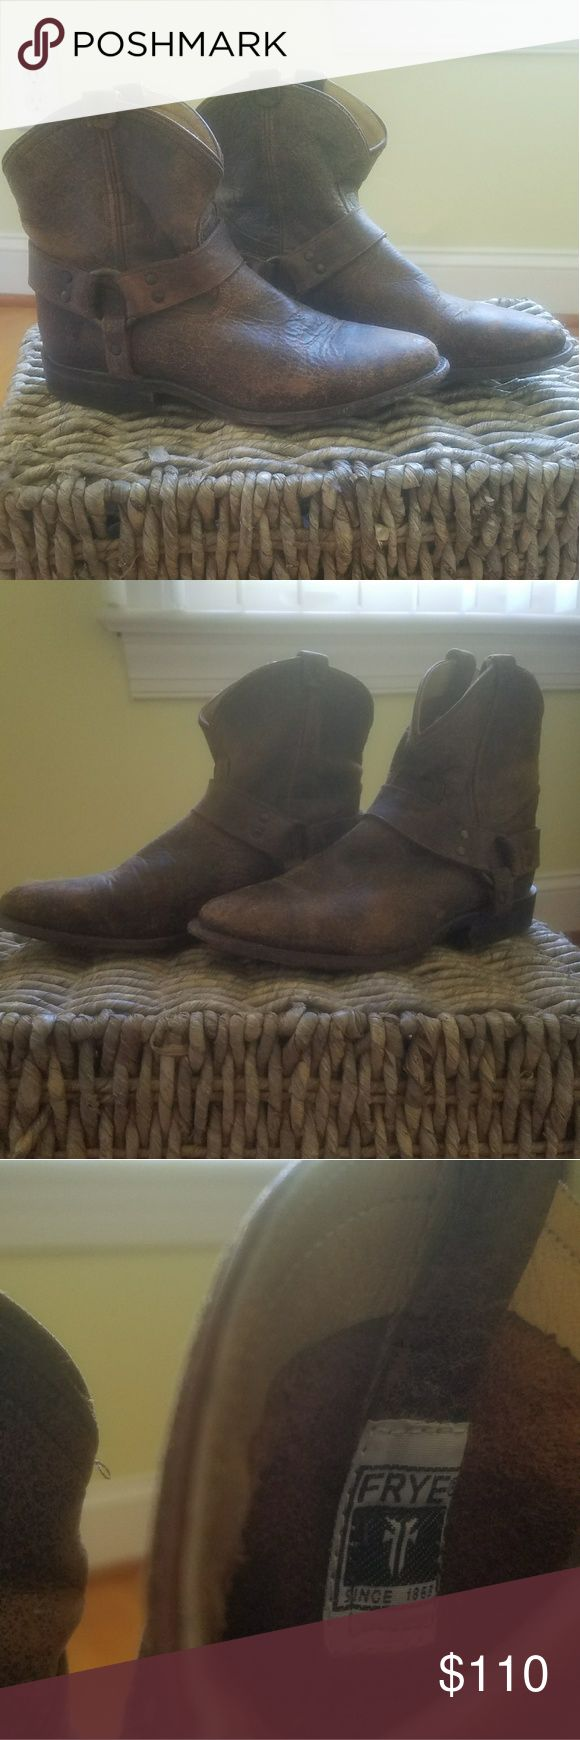 Frye Wyatt Harness Short- Distressed Nubuck Fine leather boots that will last a lifetime. Frye Shoes Ankle Boots & Booties